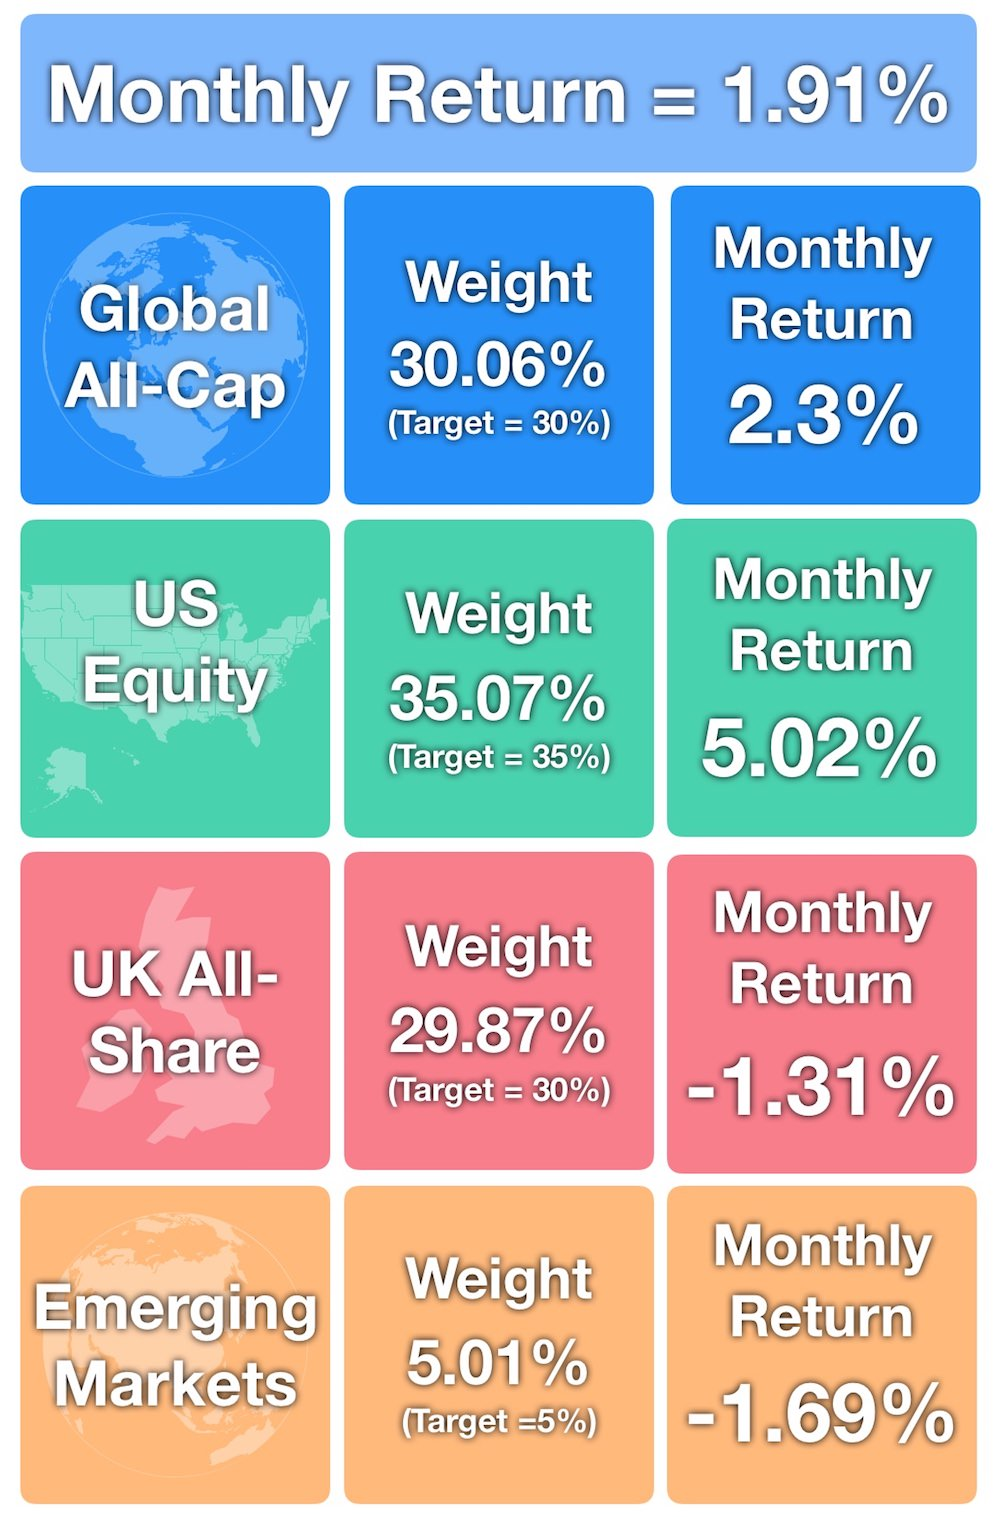 Monthly Return August 2018